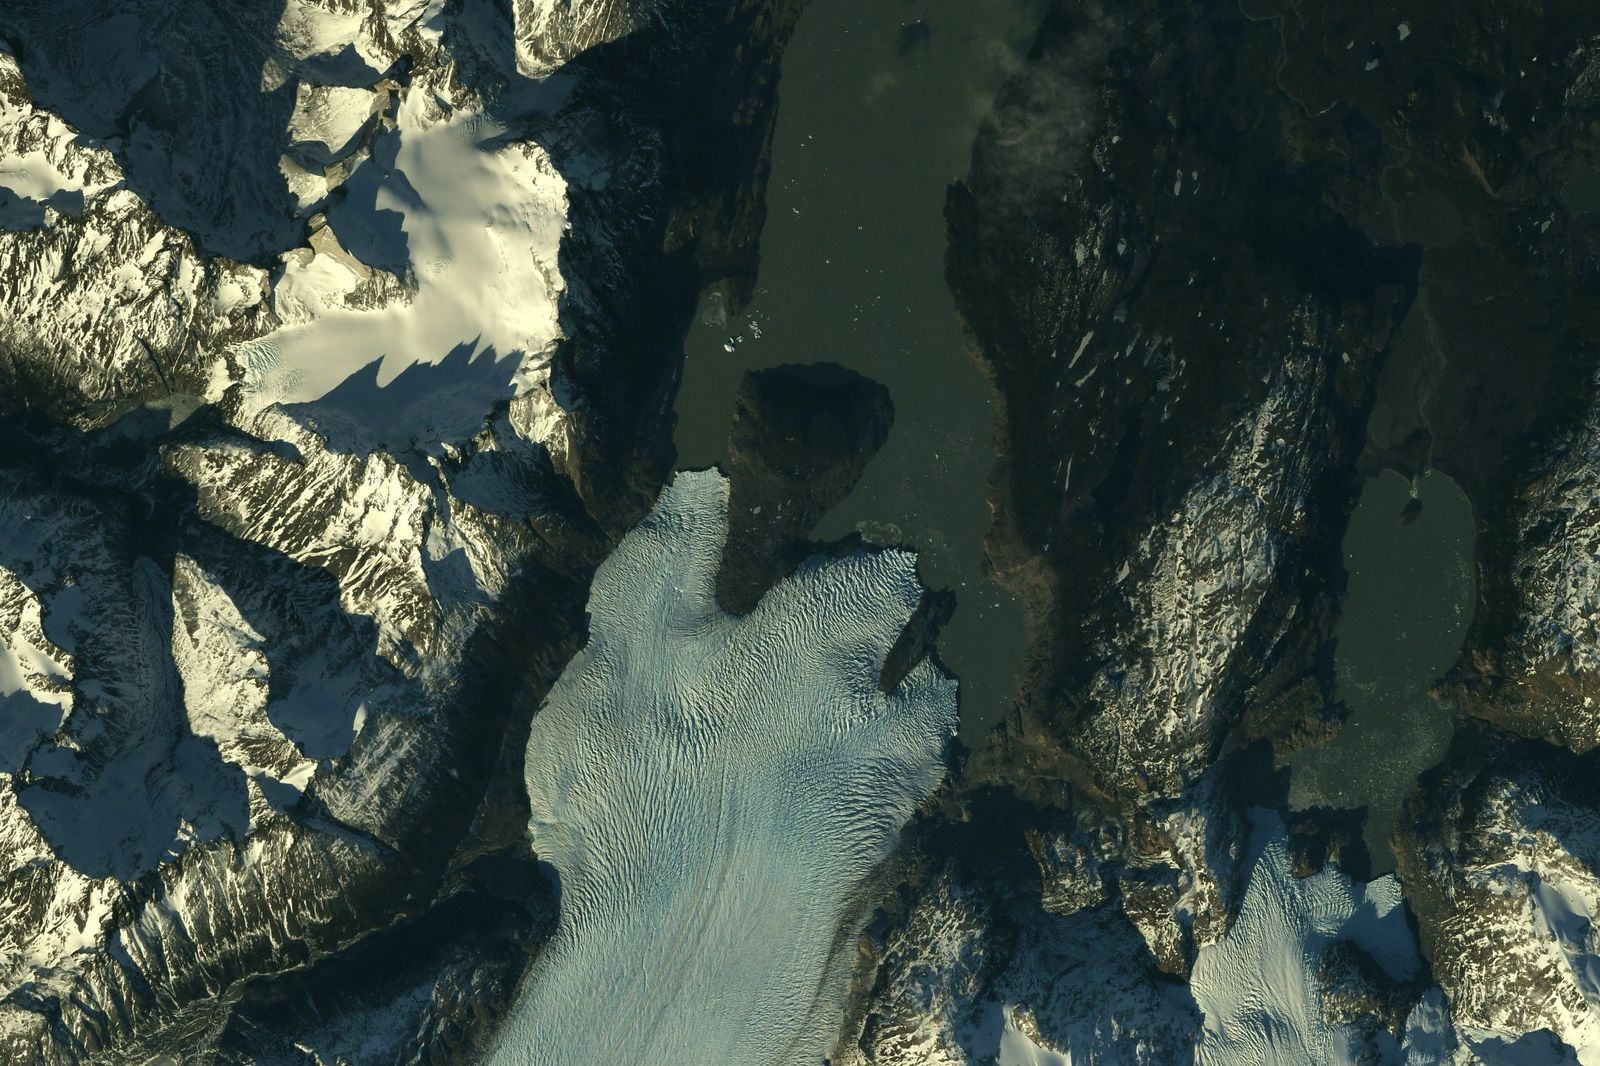 Azure rivers of ice in Patagonia #Chile #Argentina (Photo & Caption Ricky Arnold, NASA)